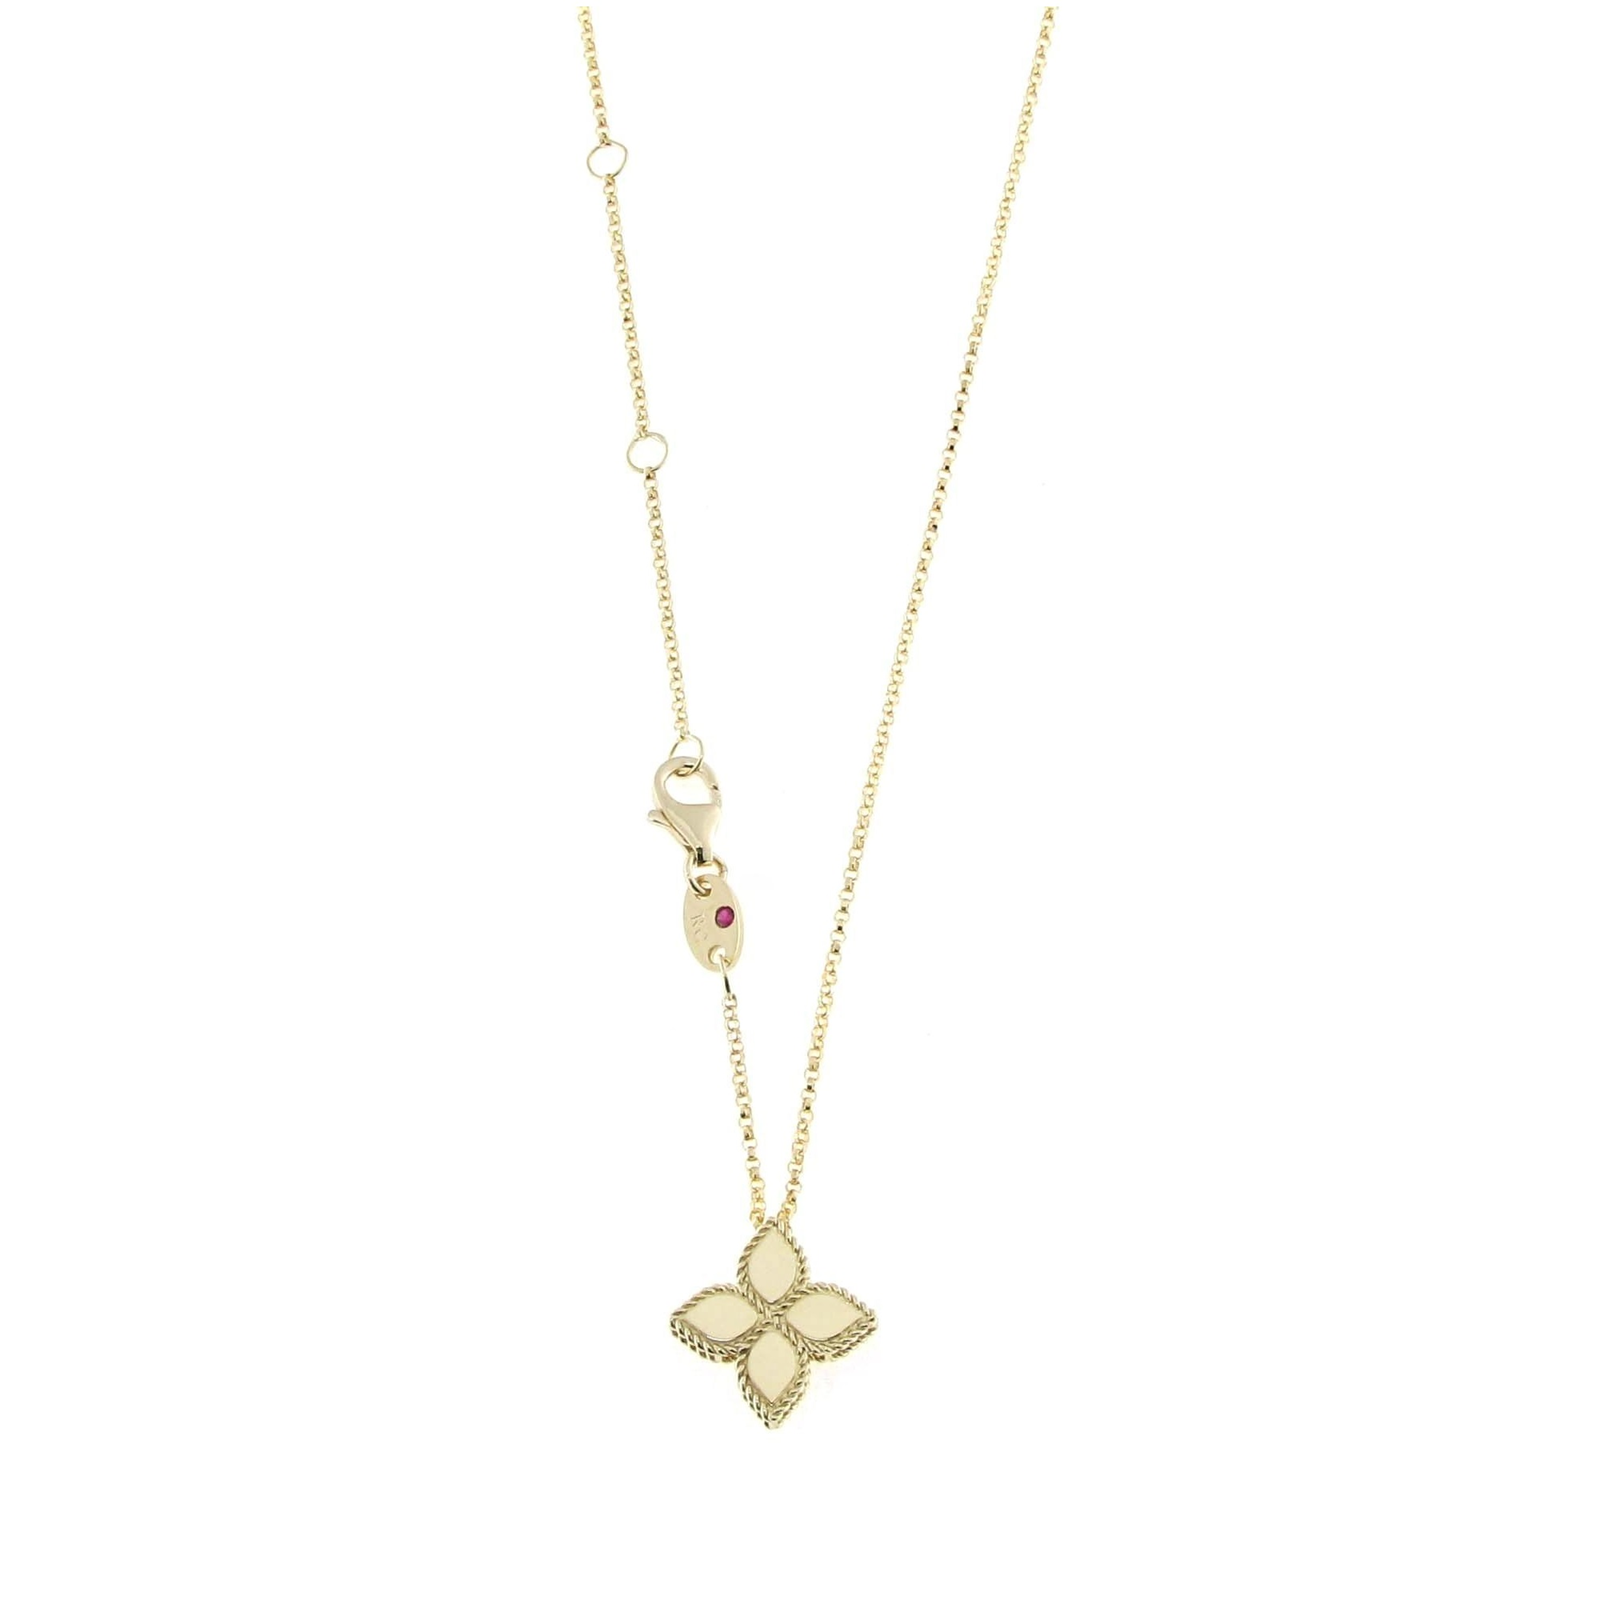 roberto p pendant necklaces yellow flower gold princess coin